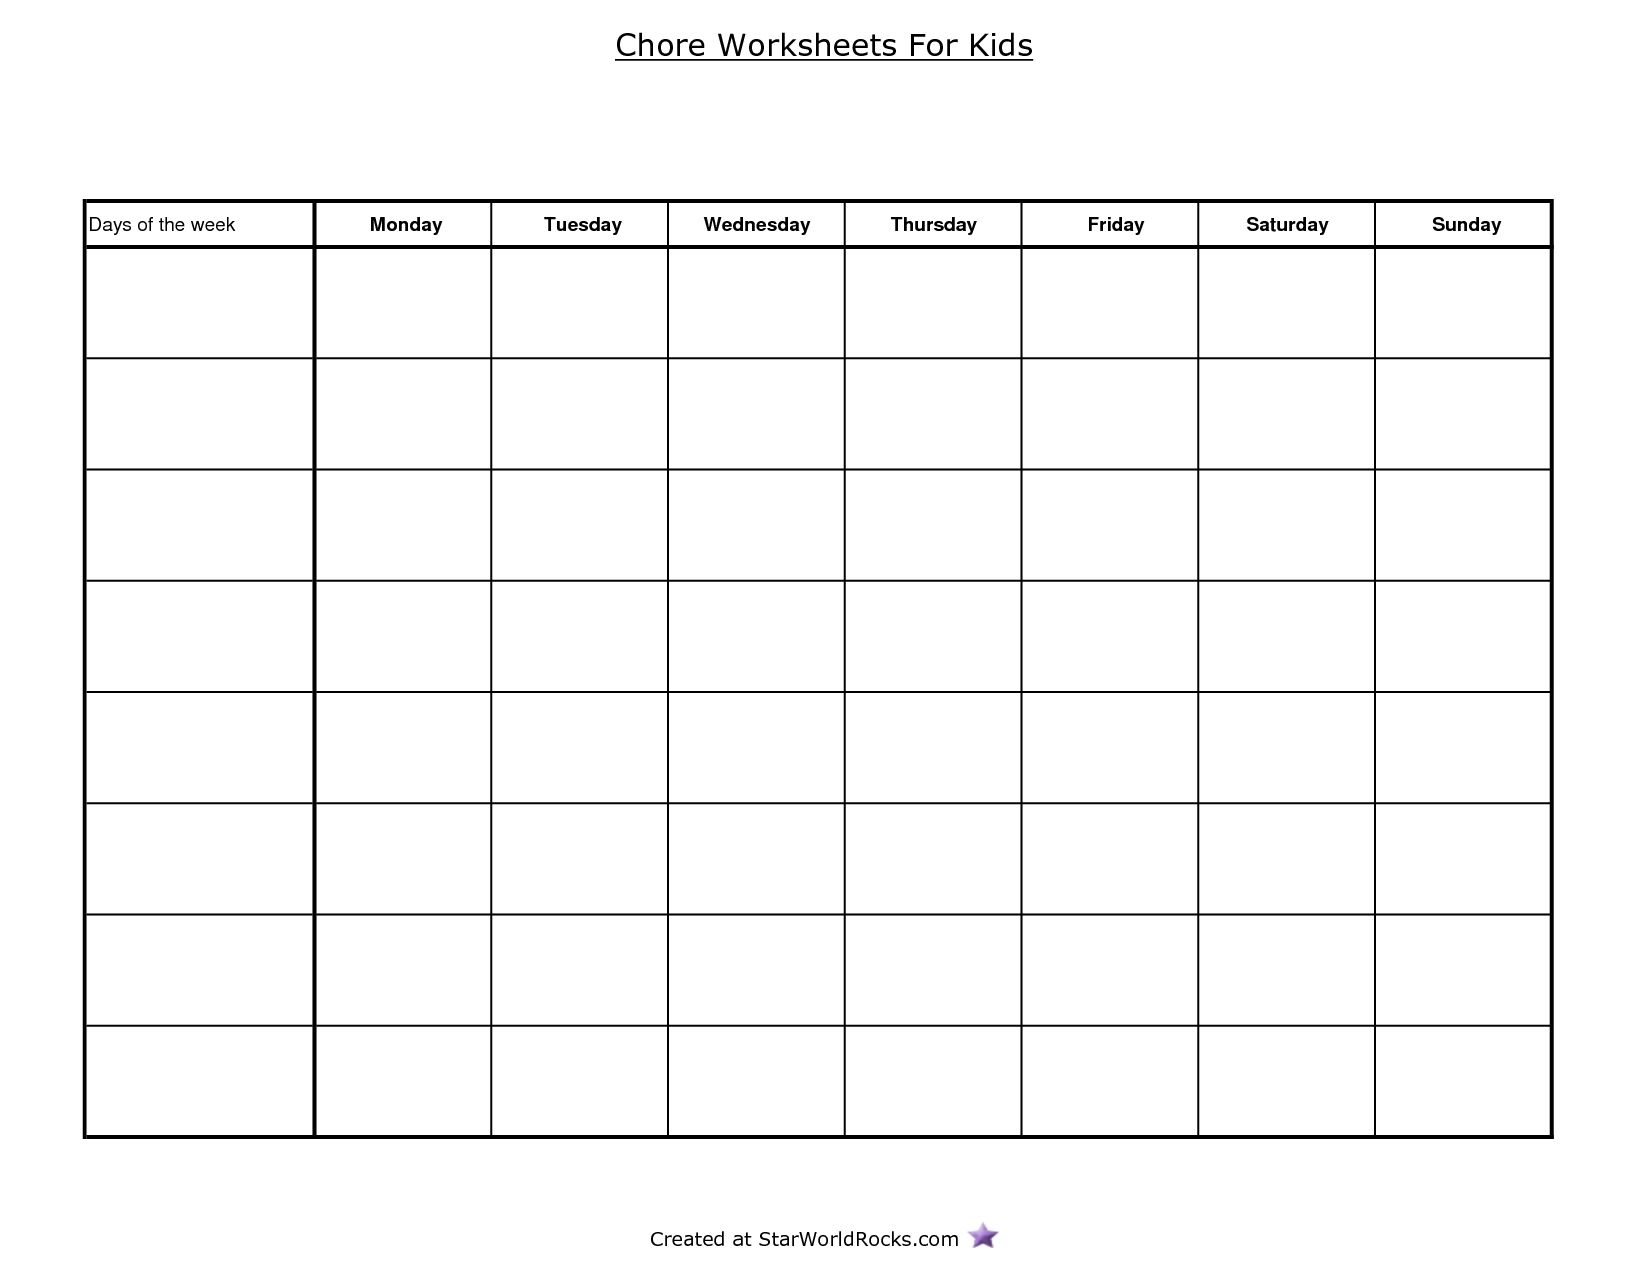 How To Print A Blank Excel Sheet With Gridlines Nehabe Codeemperor Catch Printable Chore Chart Chore Chart Template Free Printable Chore Charts